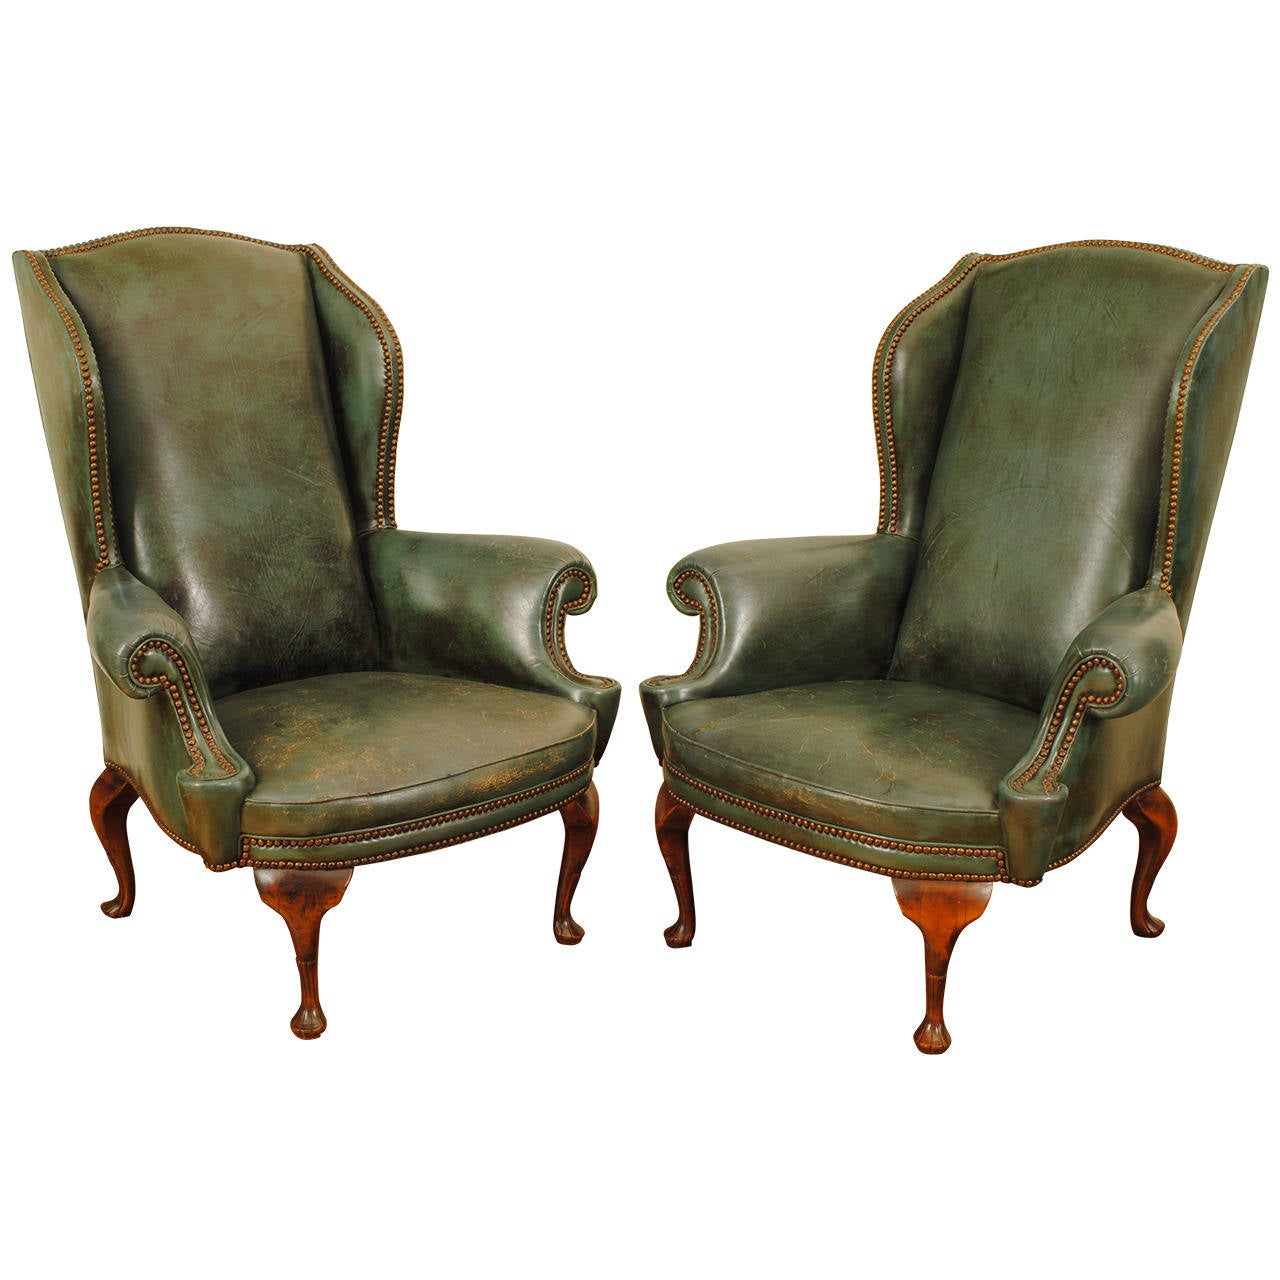 Pair of Italian Queen Anne Style Walnut and Leather Upholstered Wing Chairs  1Pair of Italian Queen Anne Style Walnut and Leather Upholstered  . Antique Queen Anne Upholstered Chairs. Home Design Ideas